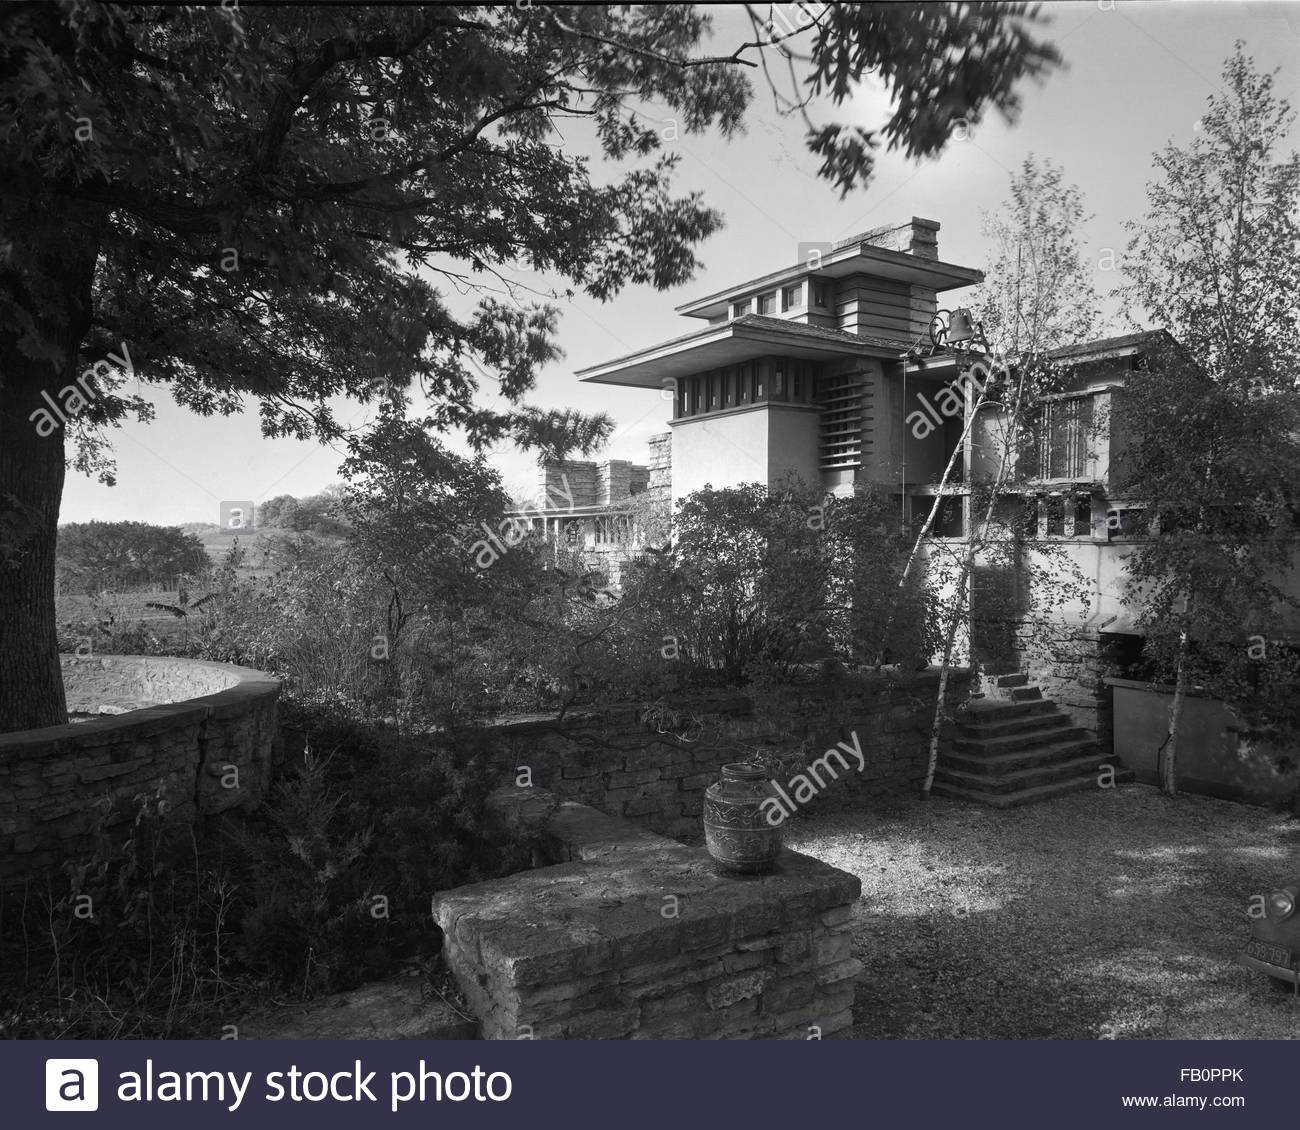 Taliesin East in Spring Green (Wis.), 1937 Dec. main entrance. - Stock Image